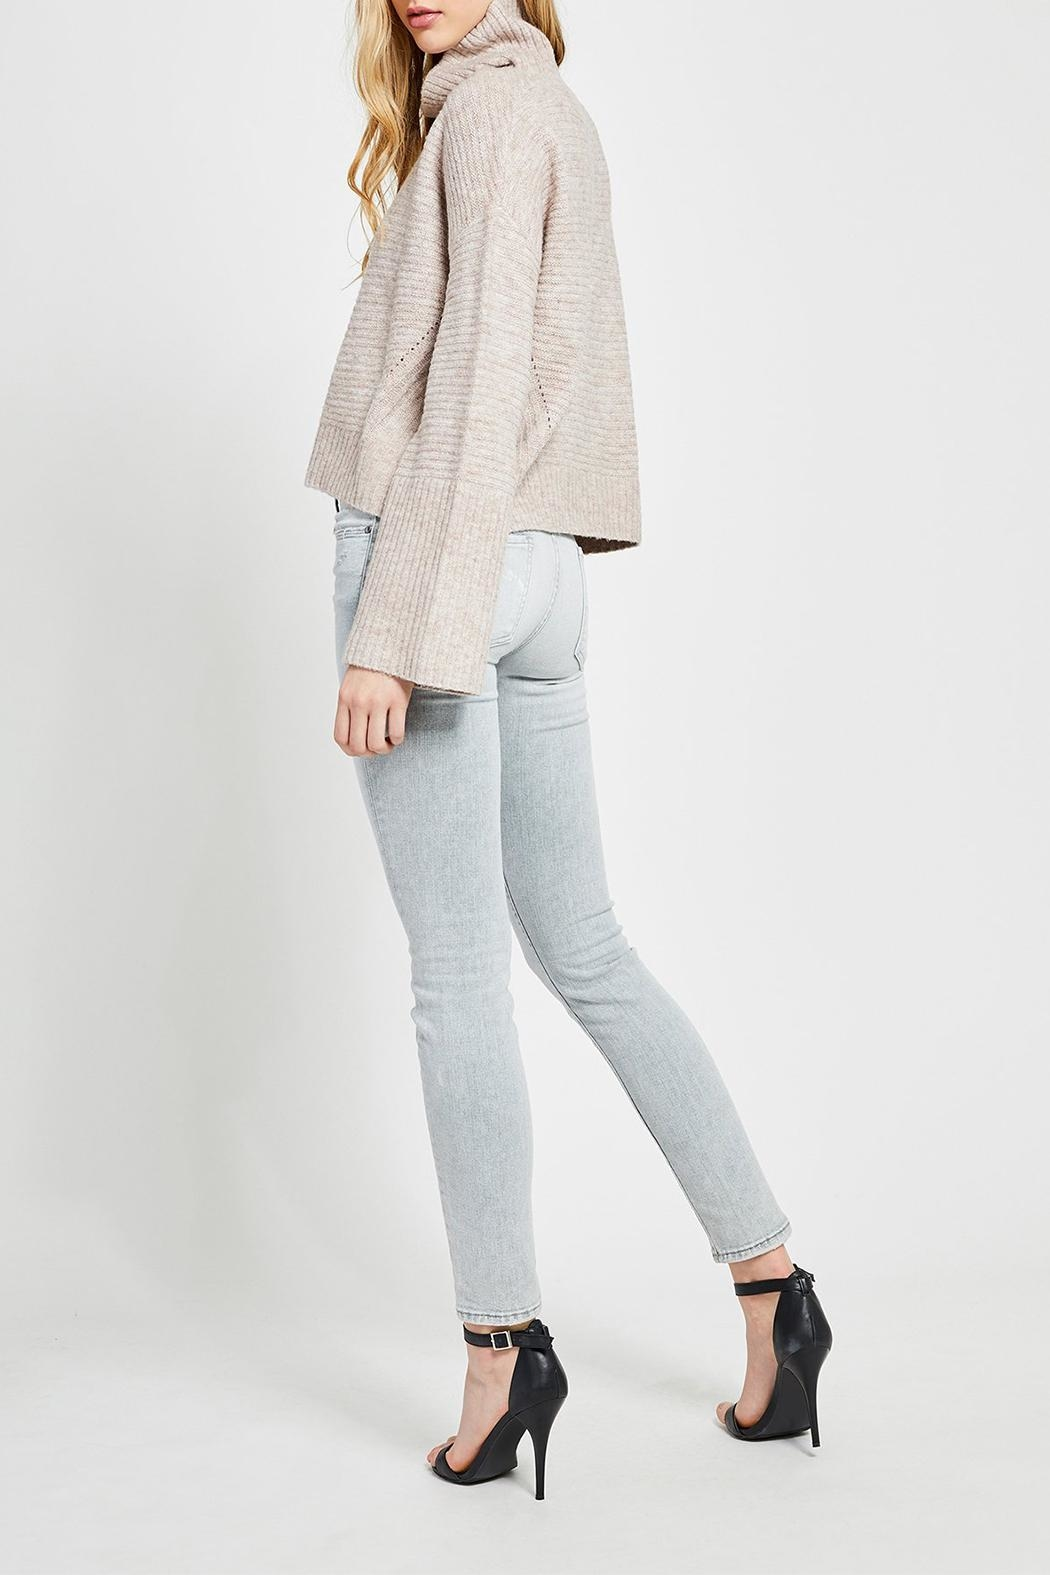 Gentle Fawn Paris Pullover - Side Cropped Image